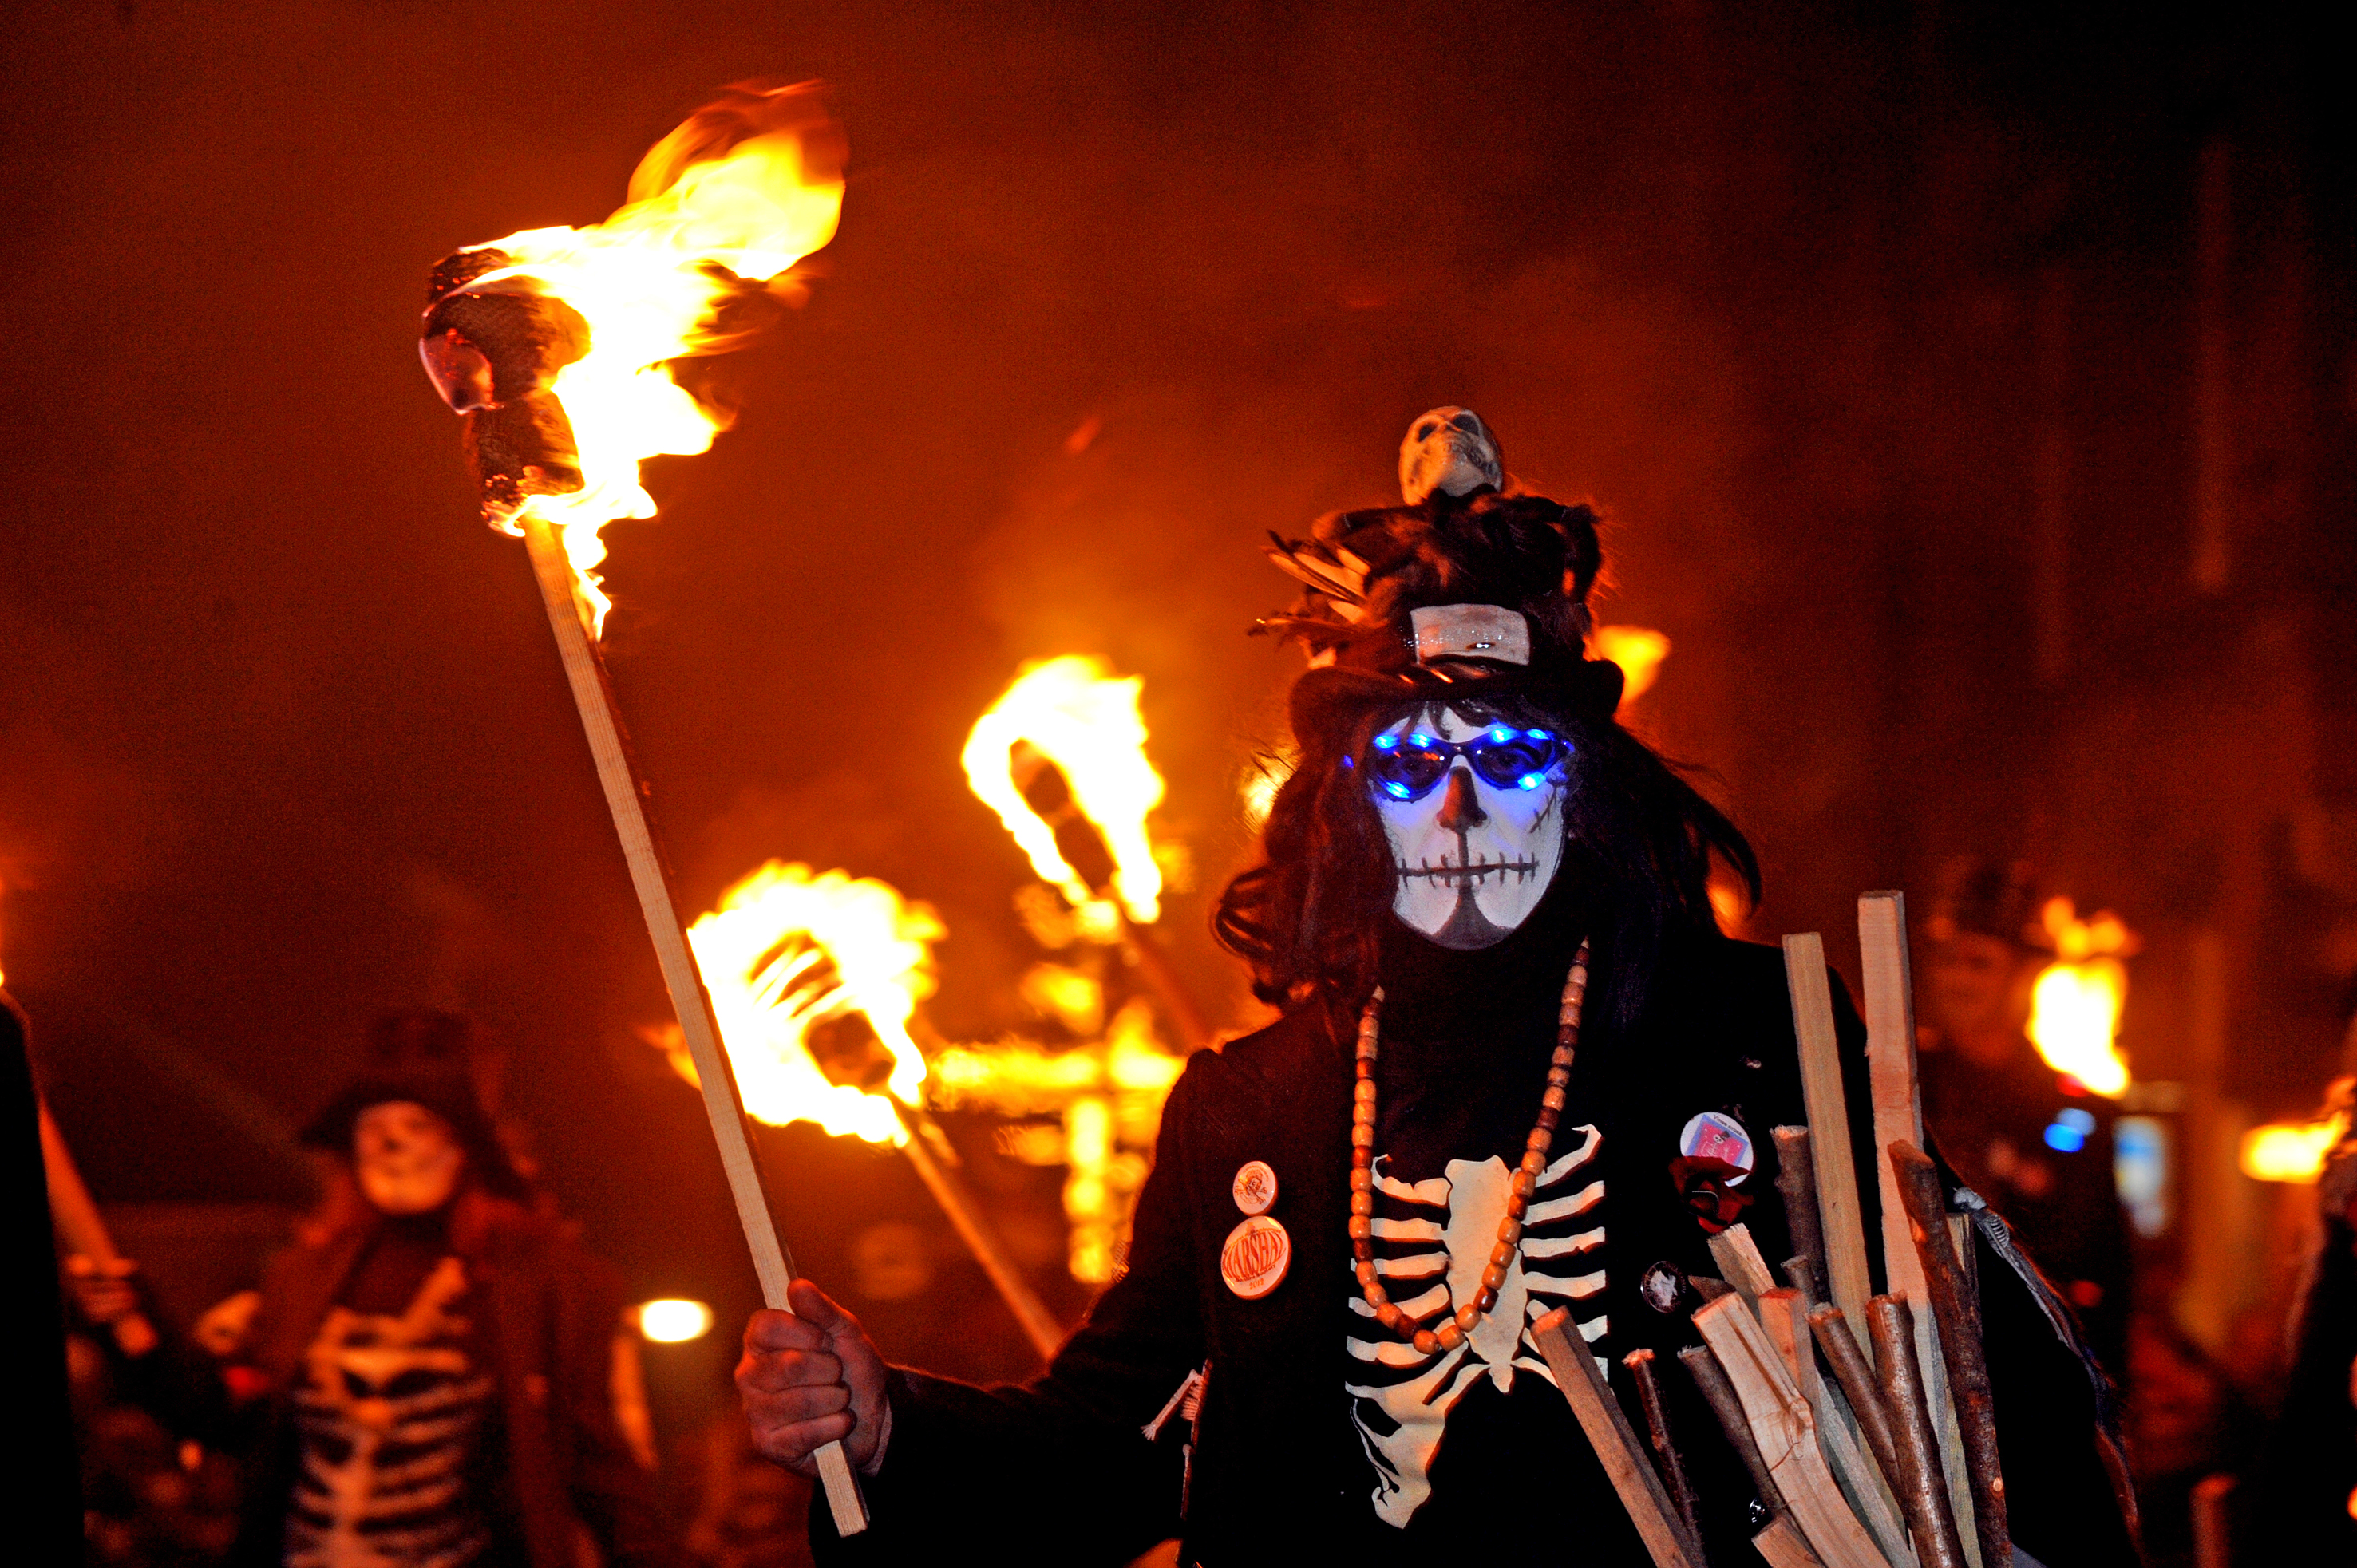 Lewes Bonfire celebrations - News